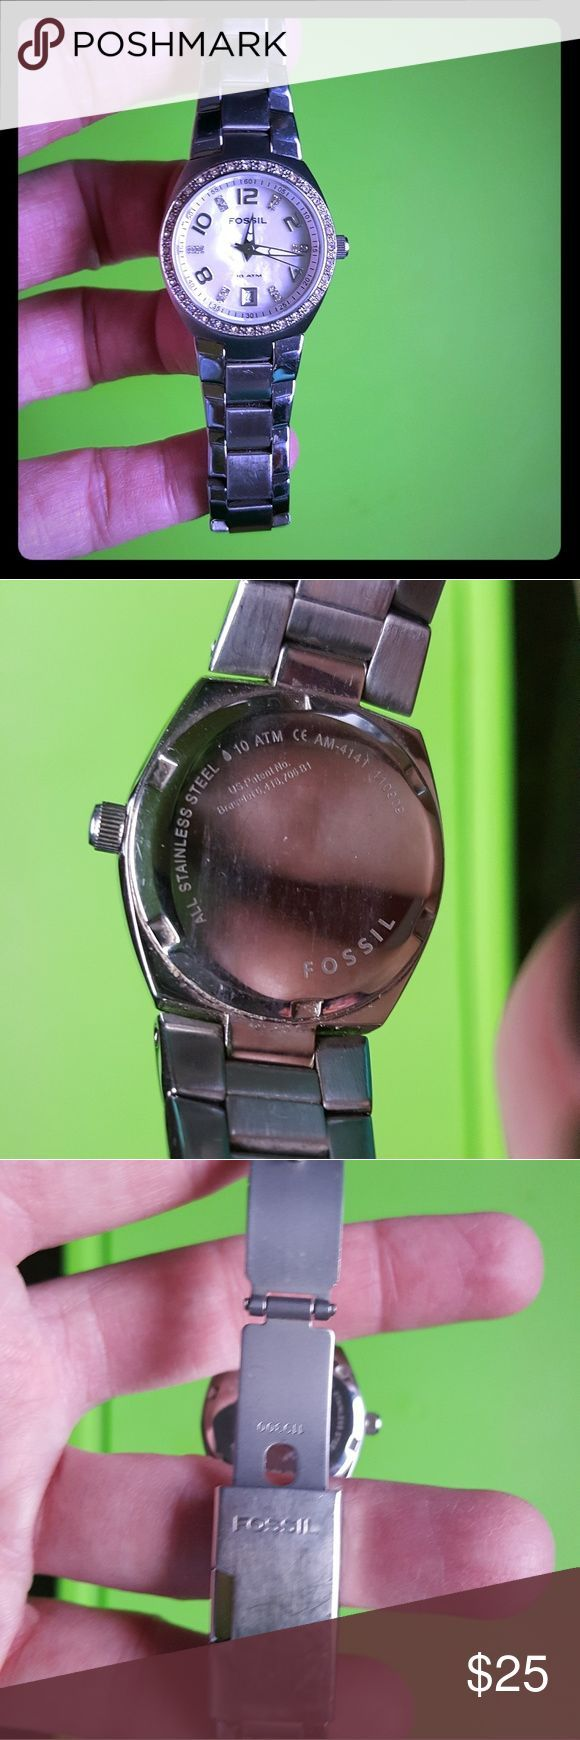 Women's Fossil watch Silver Fossil watch with rhinestones around the face. Pearl color background. Scratches on clasp from wear. Needs battery. Loved condition. Fossil Accessories Watches